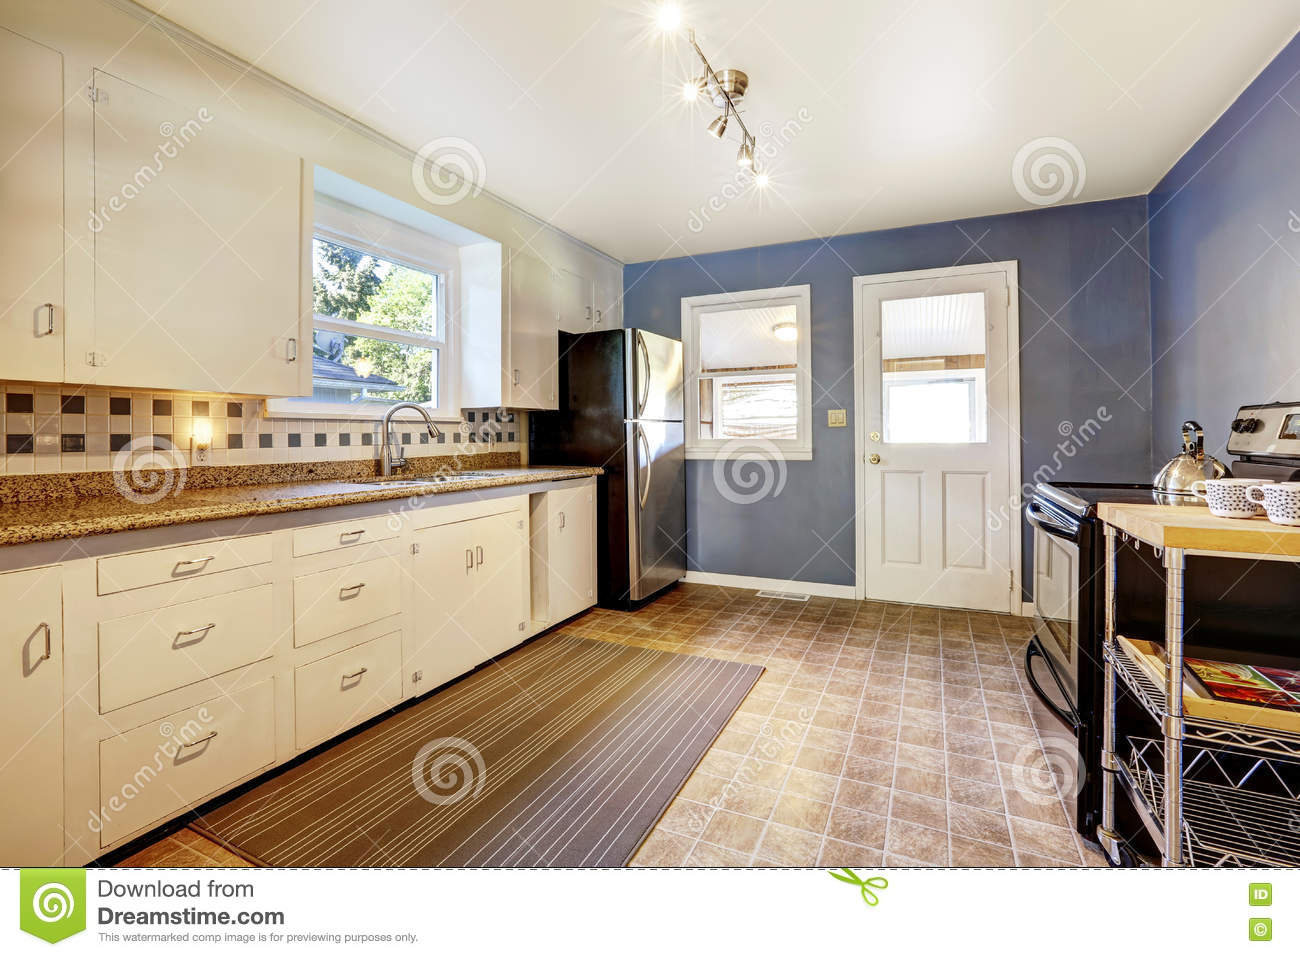 Kitchen Interior With White Cabinets And Bright Navy Walls